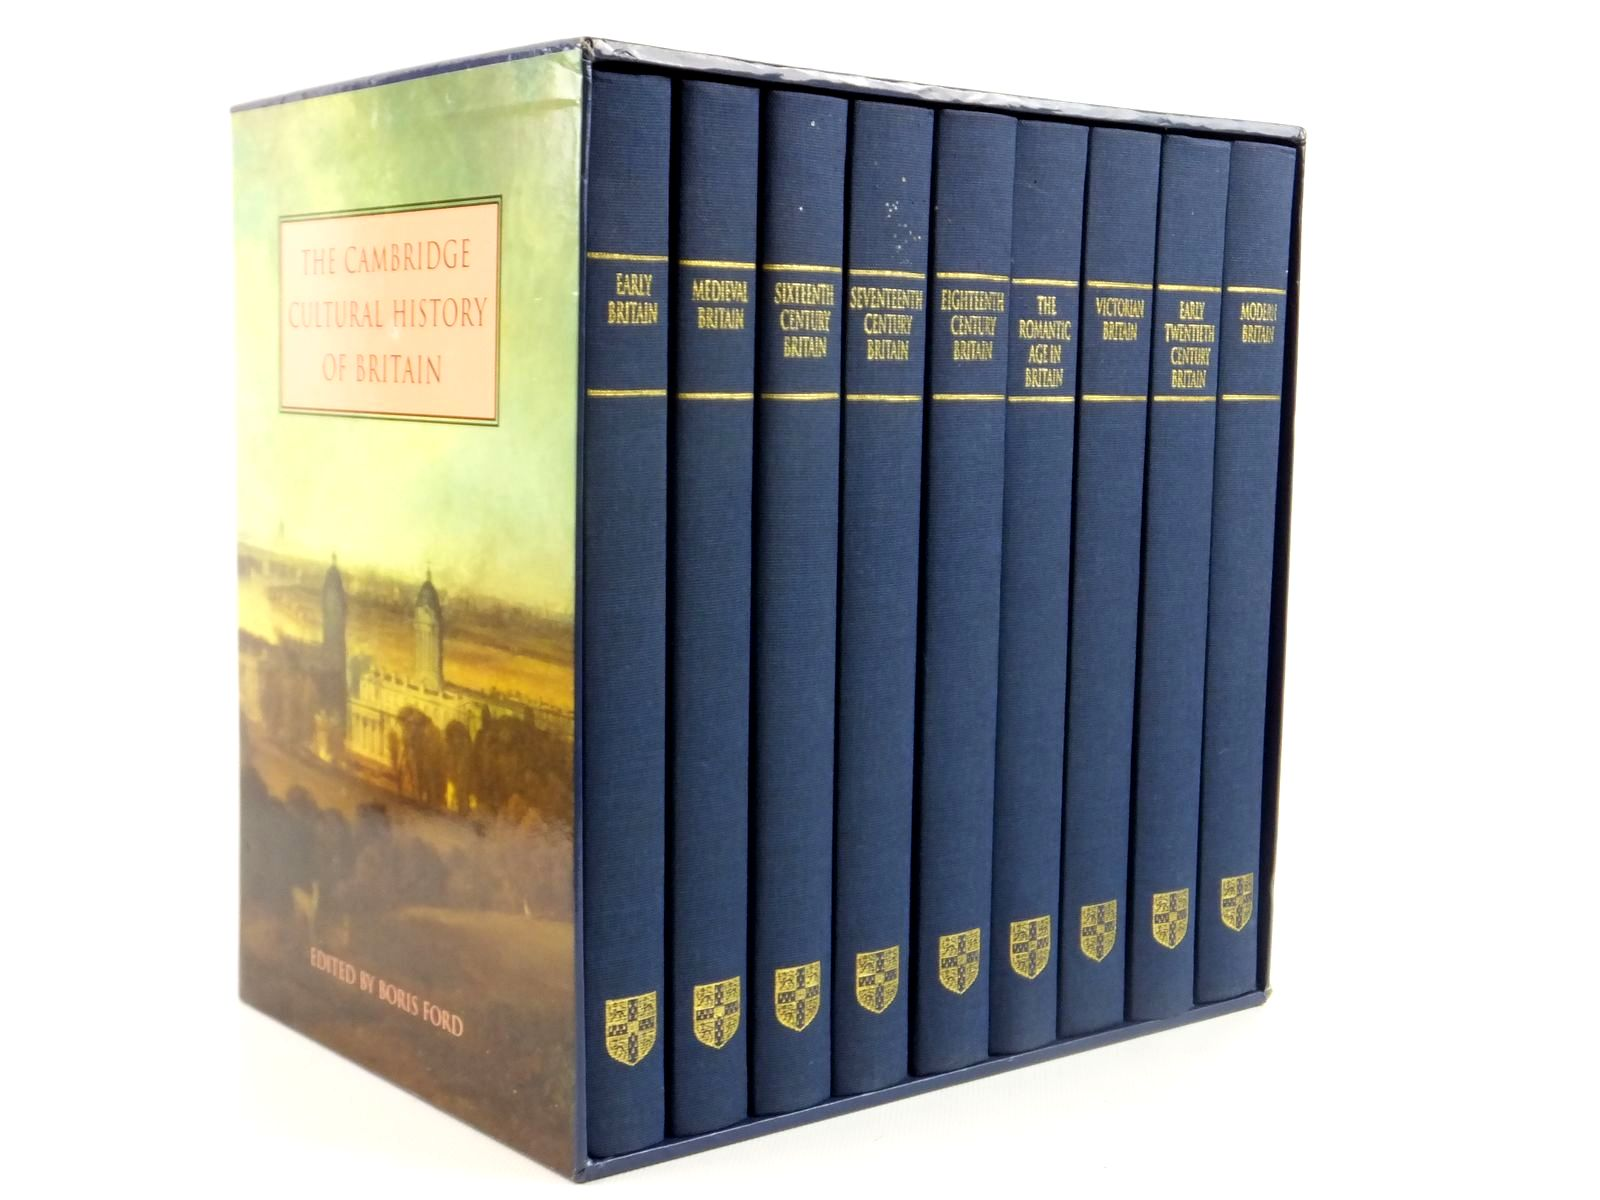 Photo of THE CAMBRIDGE CULTURAL HISTORY OF BRITAIN (9 VOLUMES) written by Ford, Boris published by Cambridge University Press, Folio Society (STOCK CODE: 1608452)  for sale by Stella & Rose's Books